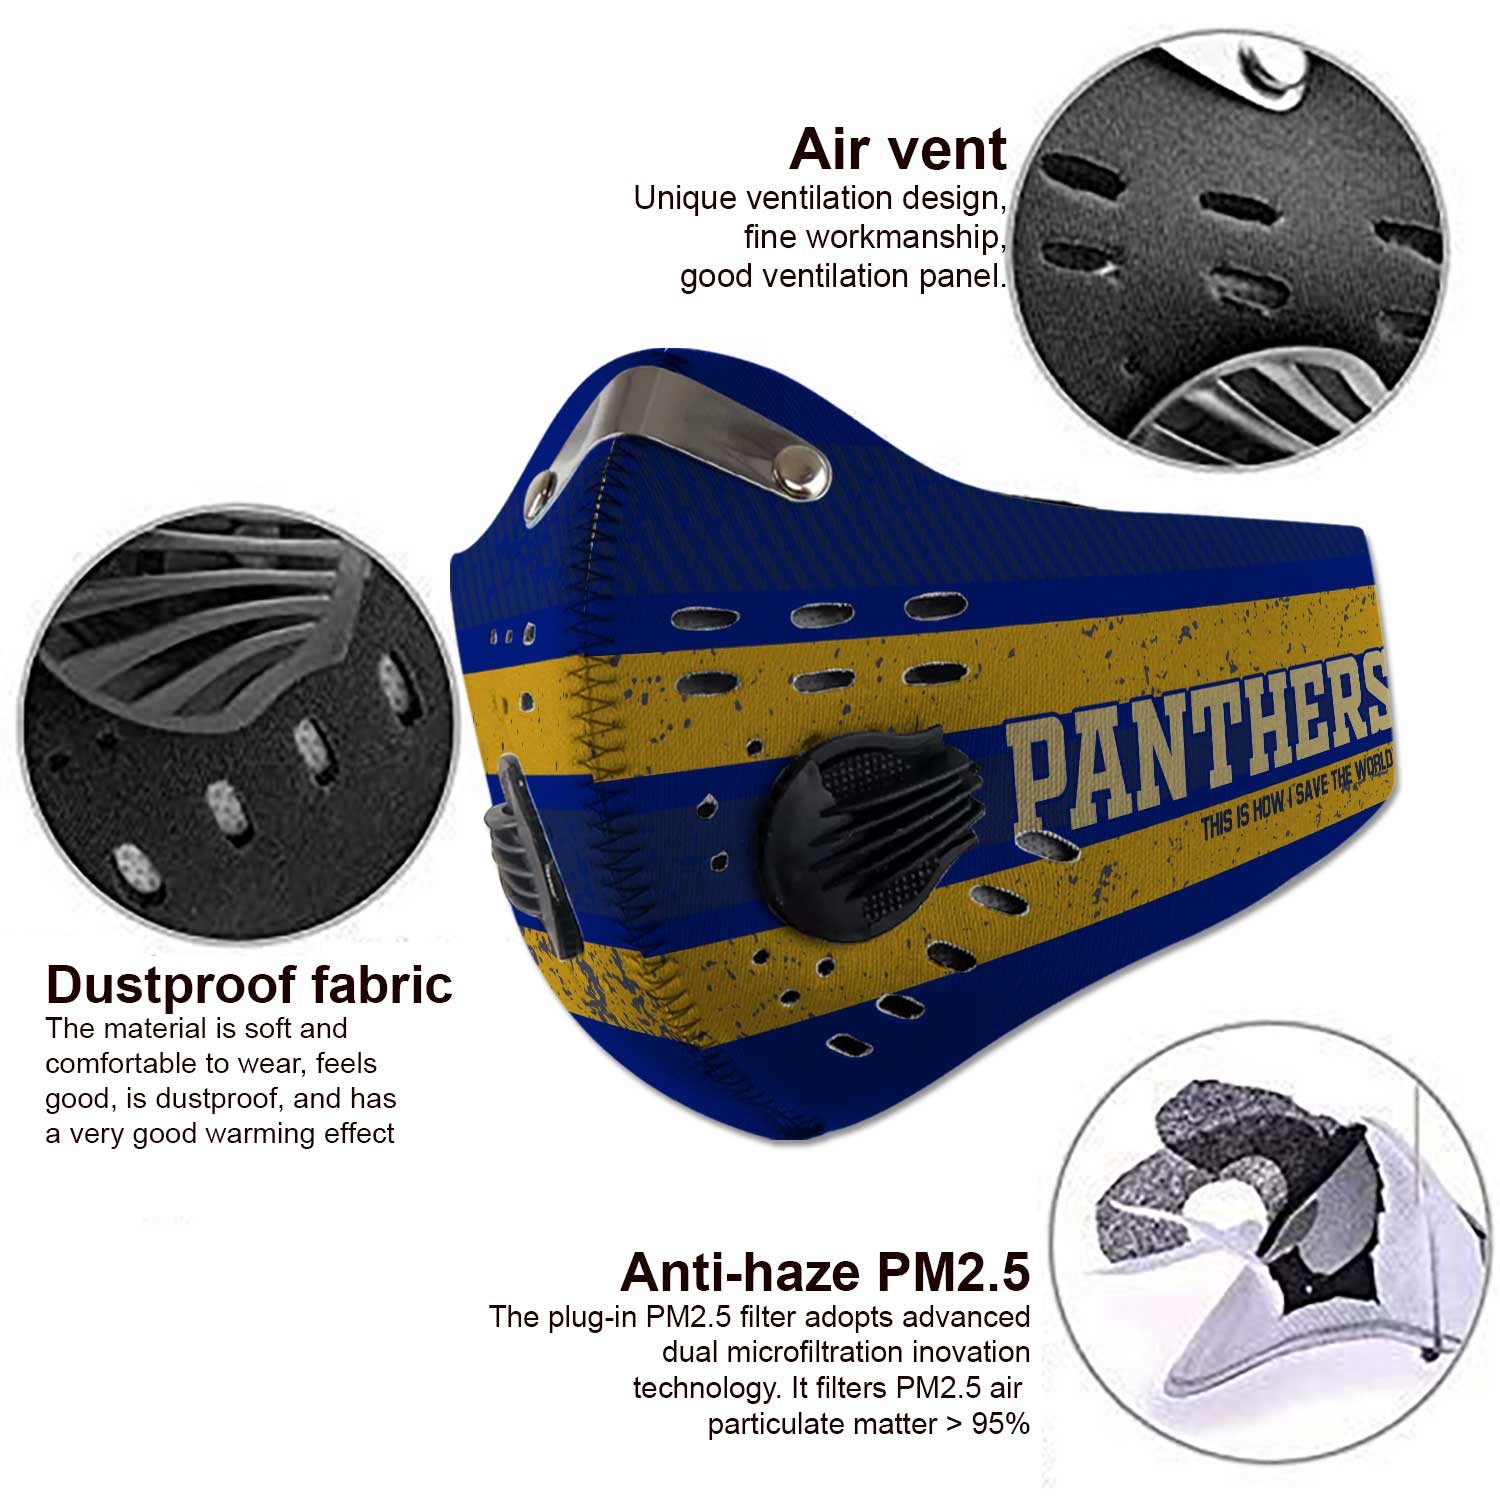 Pitt panthers this is how i save the world carbon filter face mask 4